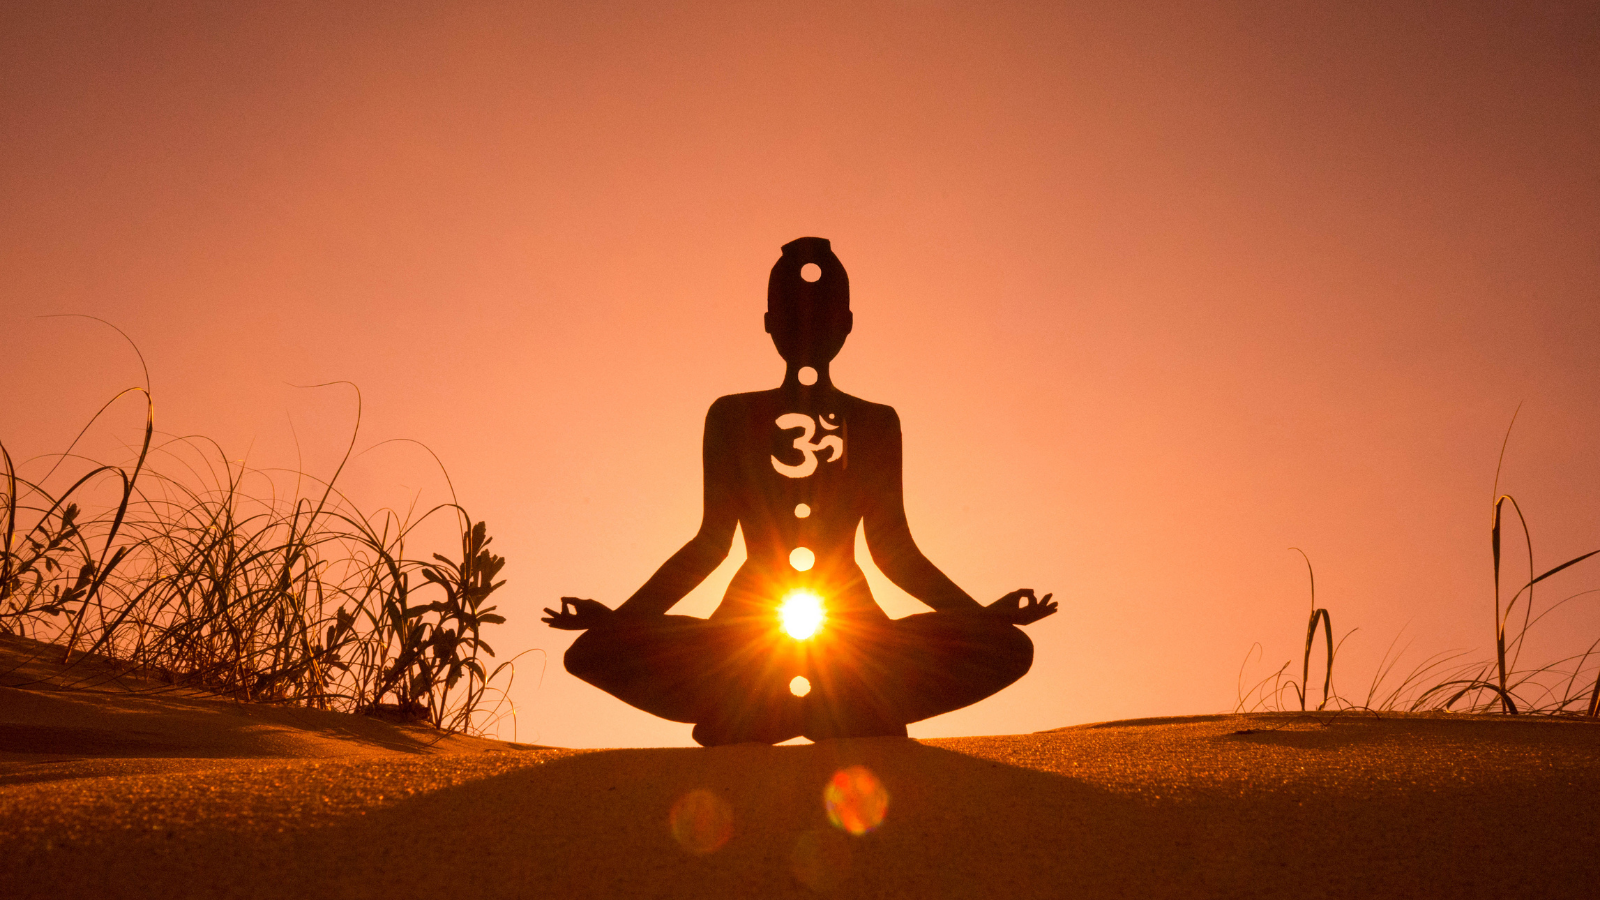 How to find your center and reclaim your joy in the face of fear with yogic principles